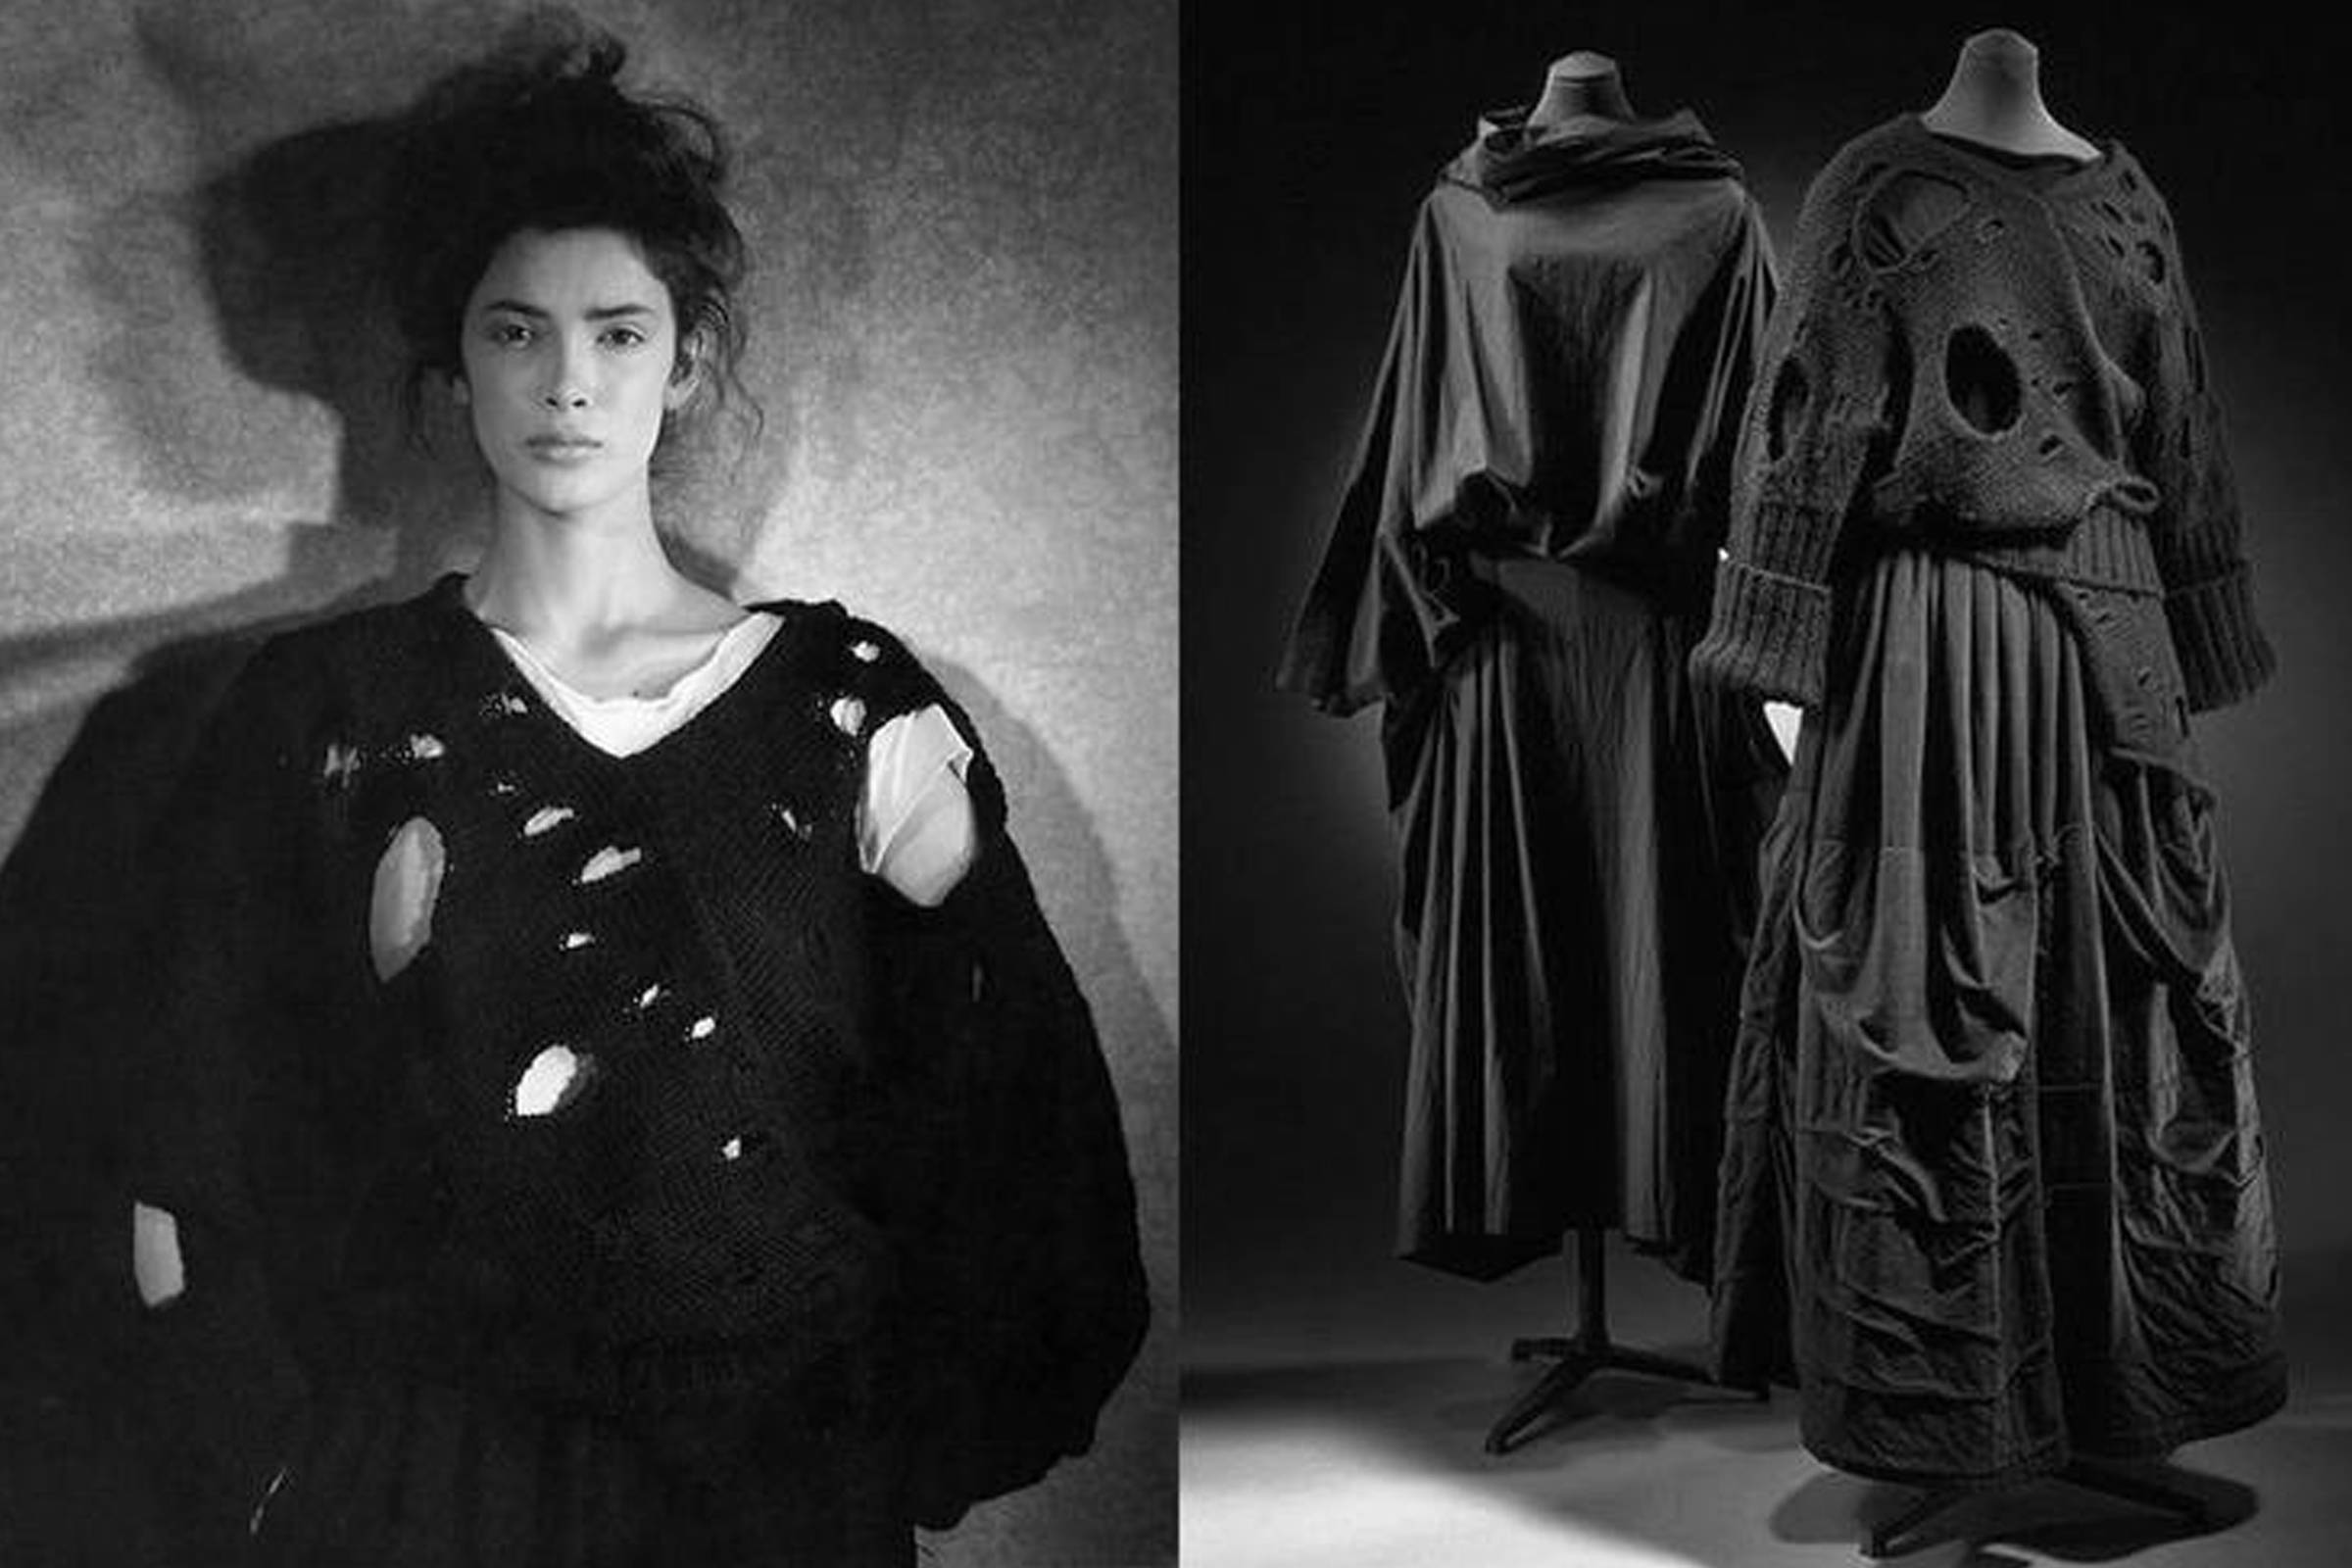 Modern Unconventionalism: The New Generation of Post-Comme Avant-Garde